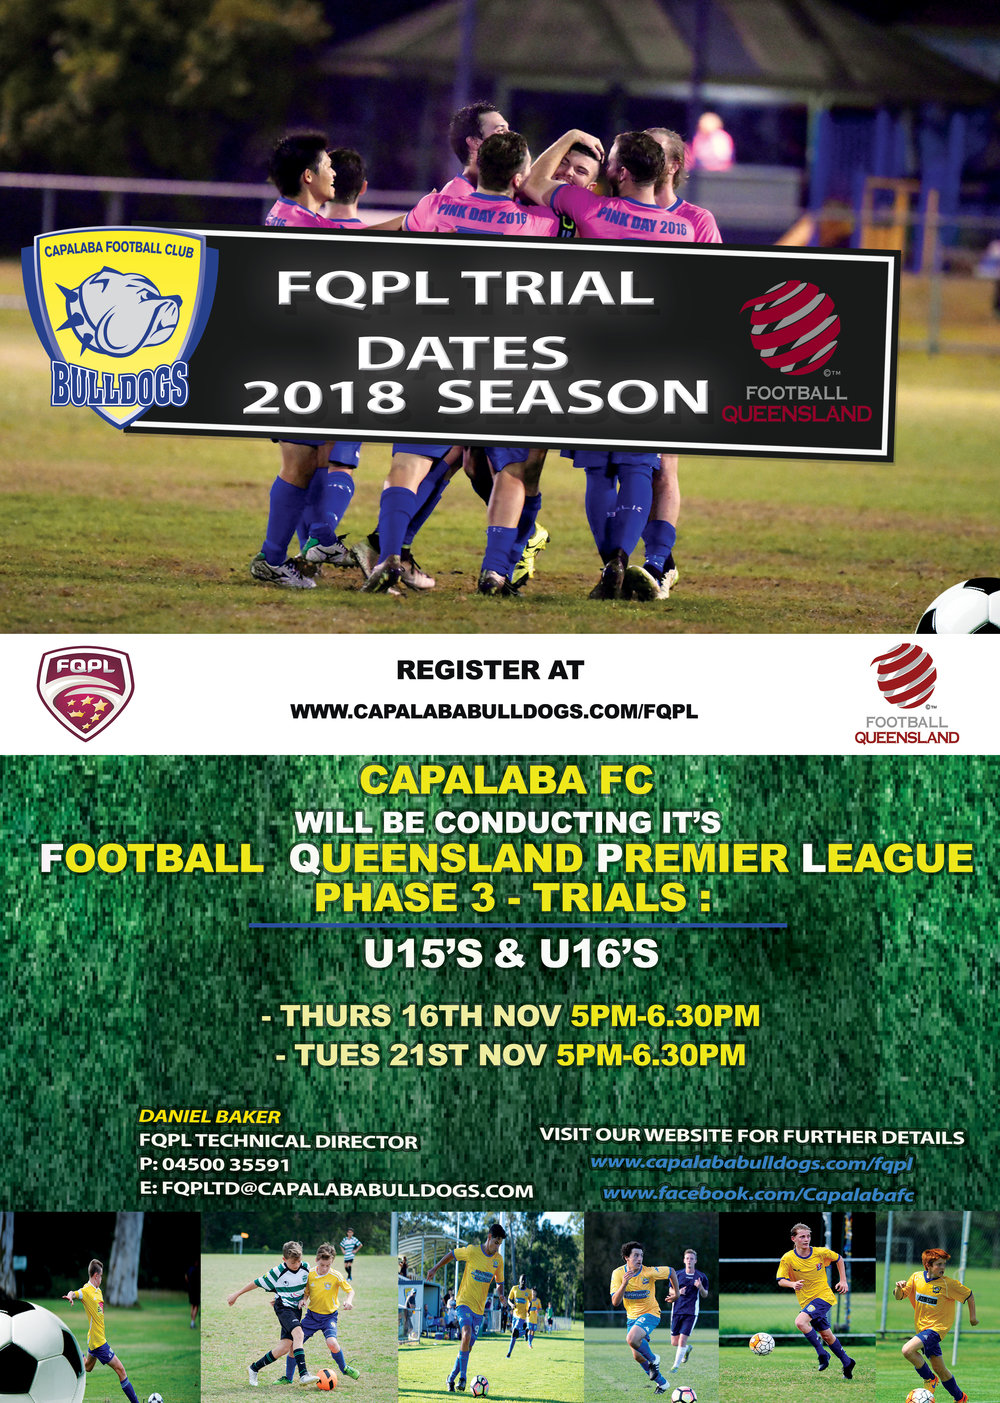 Capalaba FC FQPL Trial Dates 2017 Flyer Phase 3.jpg